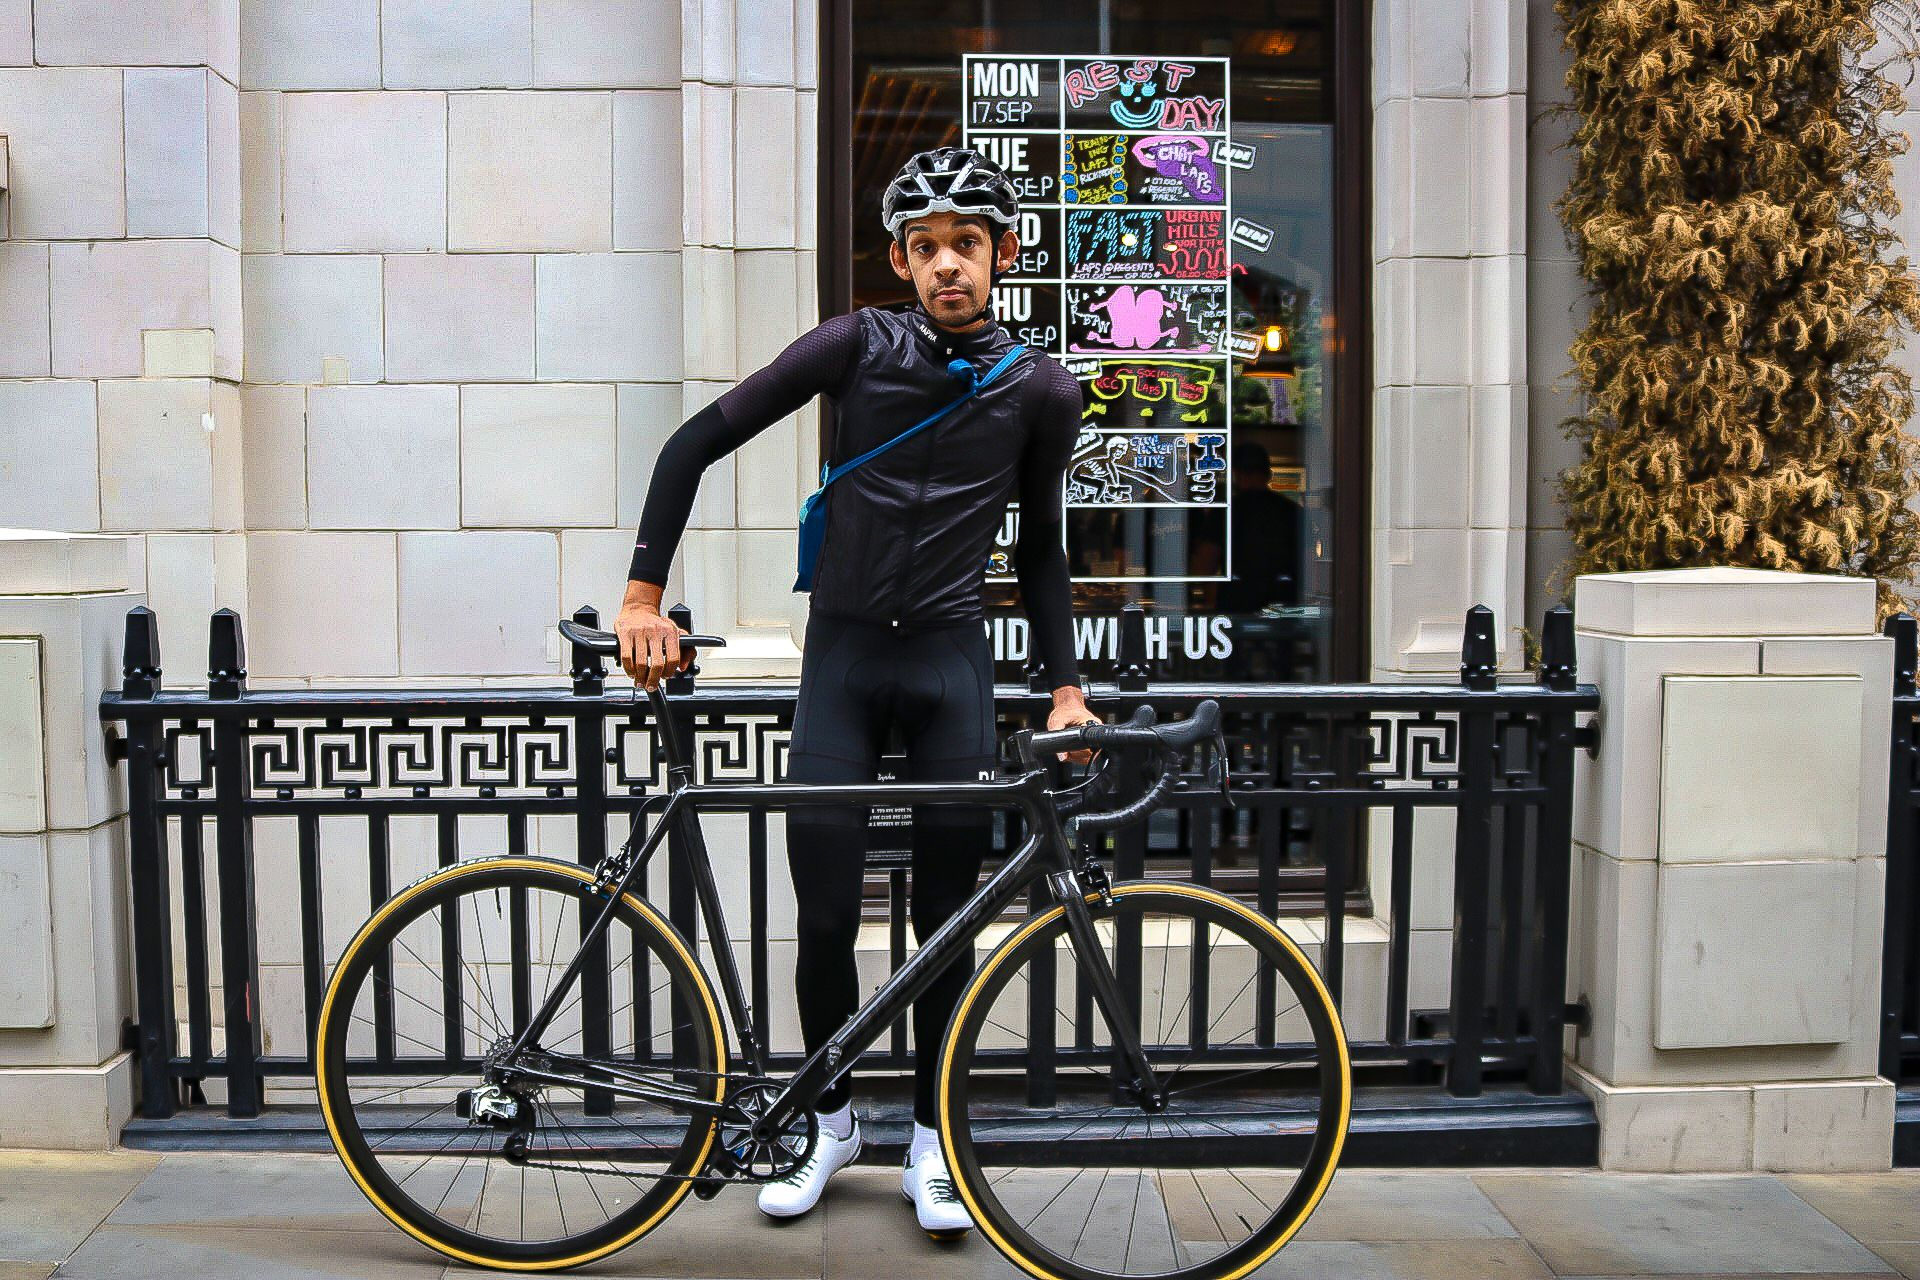 Rollapaluza Urban Hill Climb: An insider view on how to get ready for the legendary Swain's Lane.